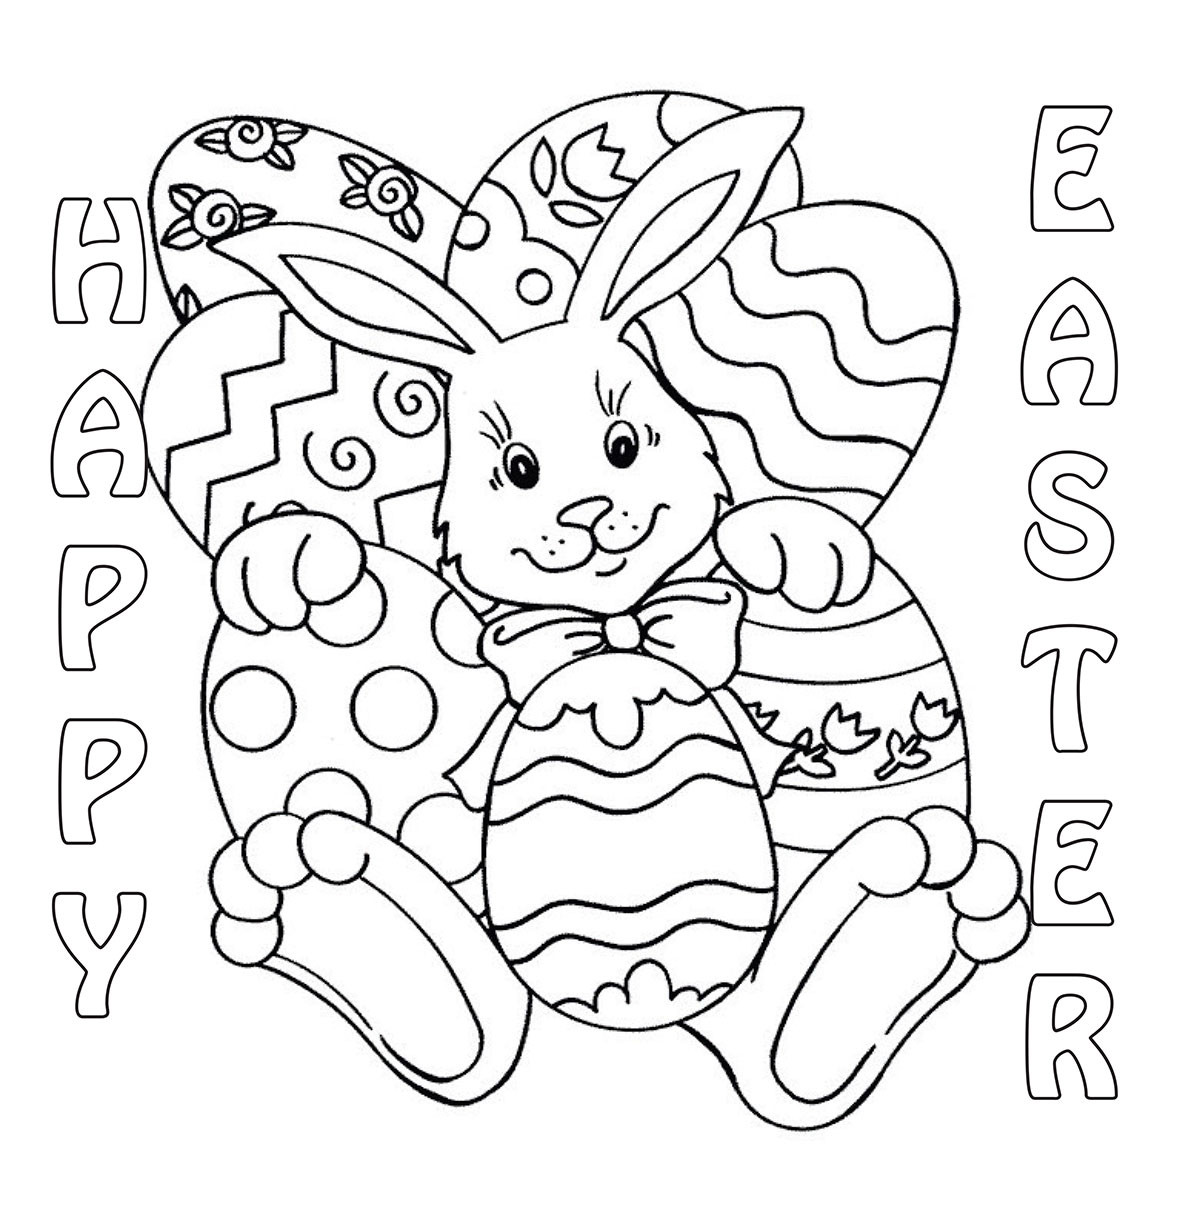 Best ideas about Easter Coloring Sheets For Kids . Save or Pin Easter Coloring Contest 2014 Now.